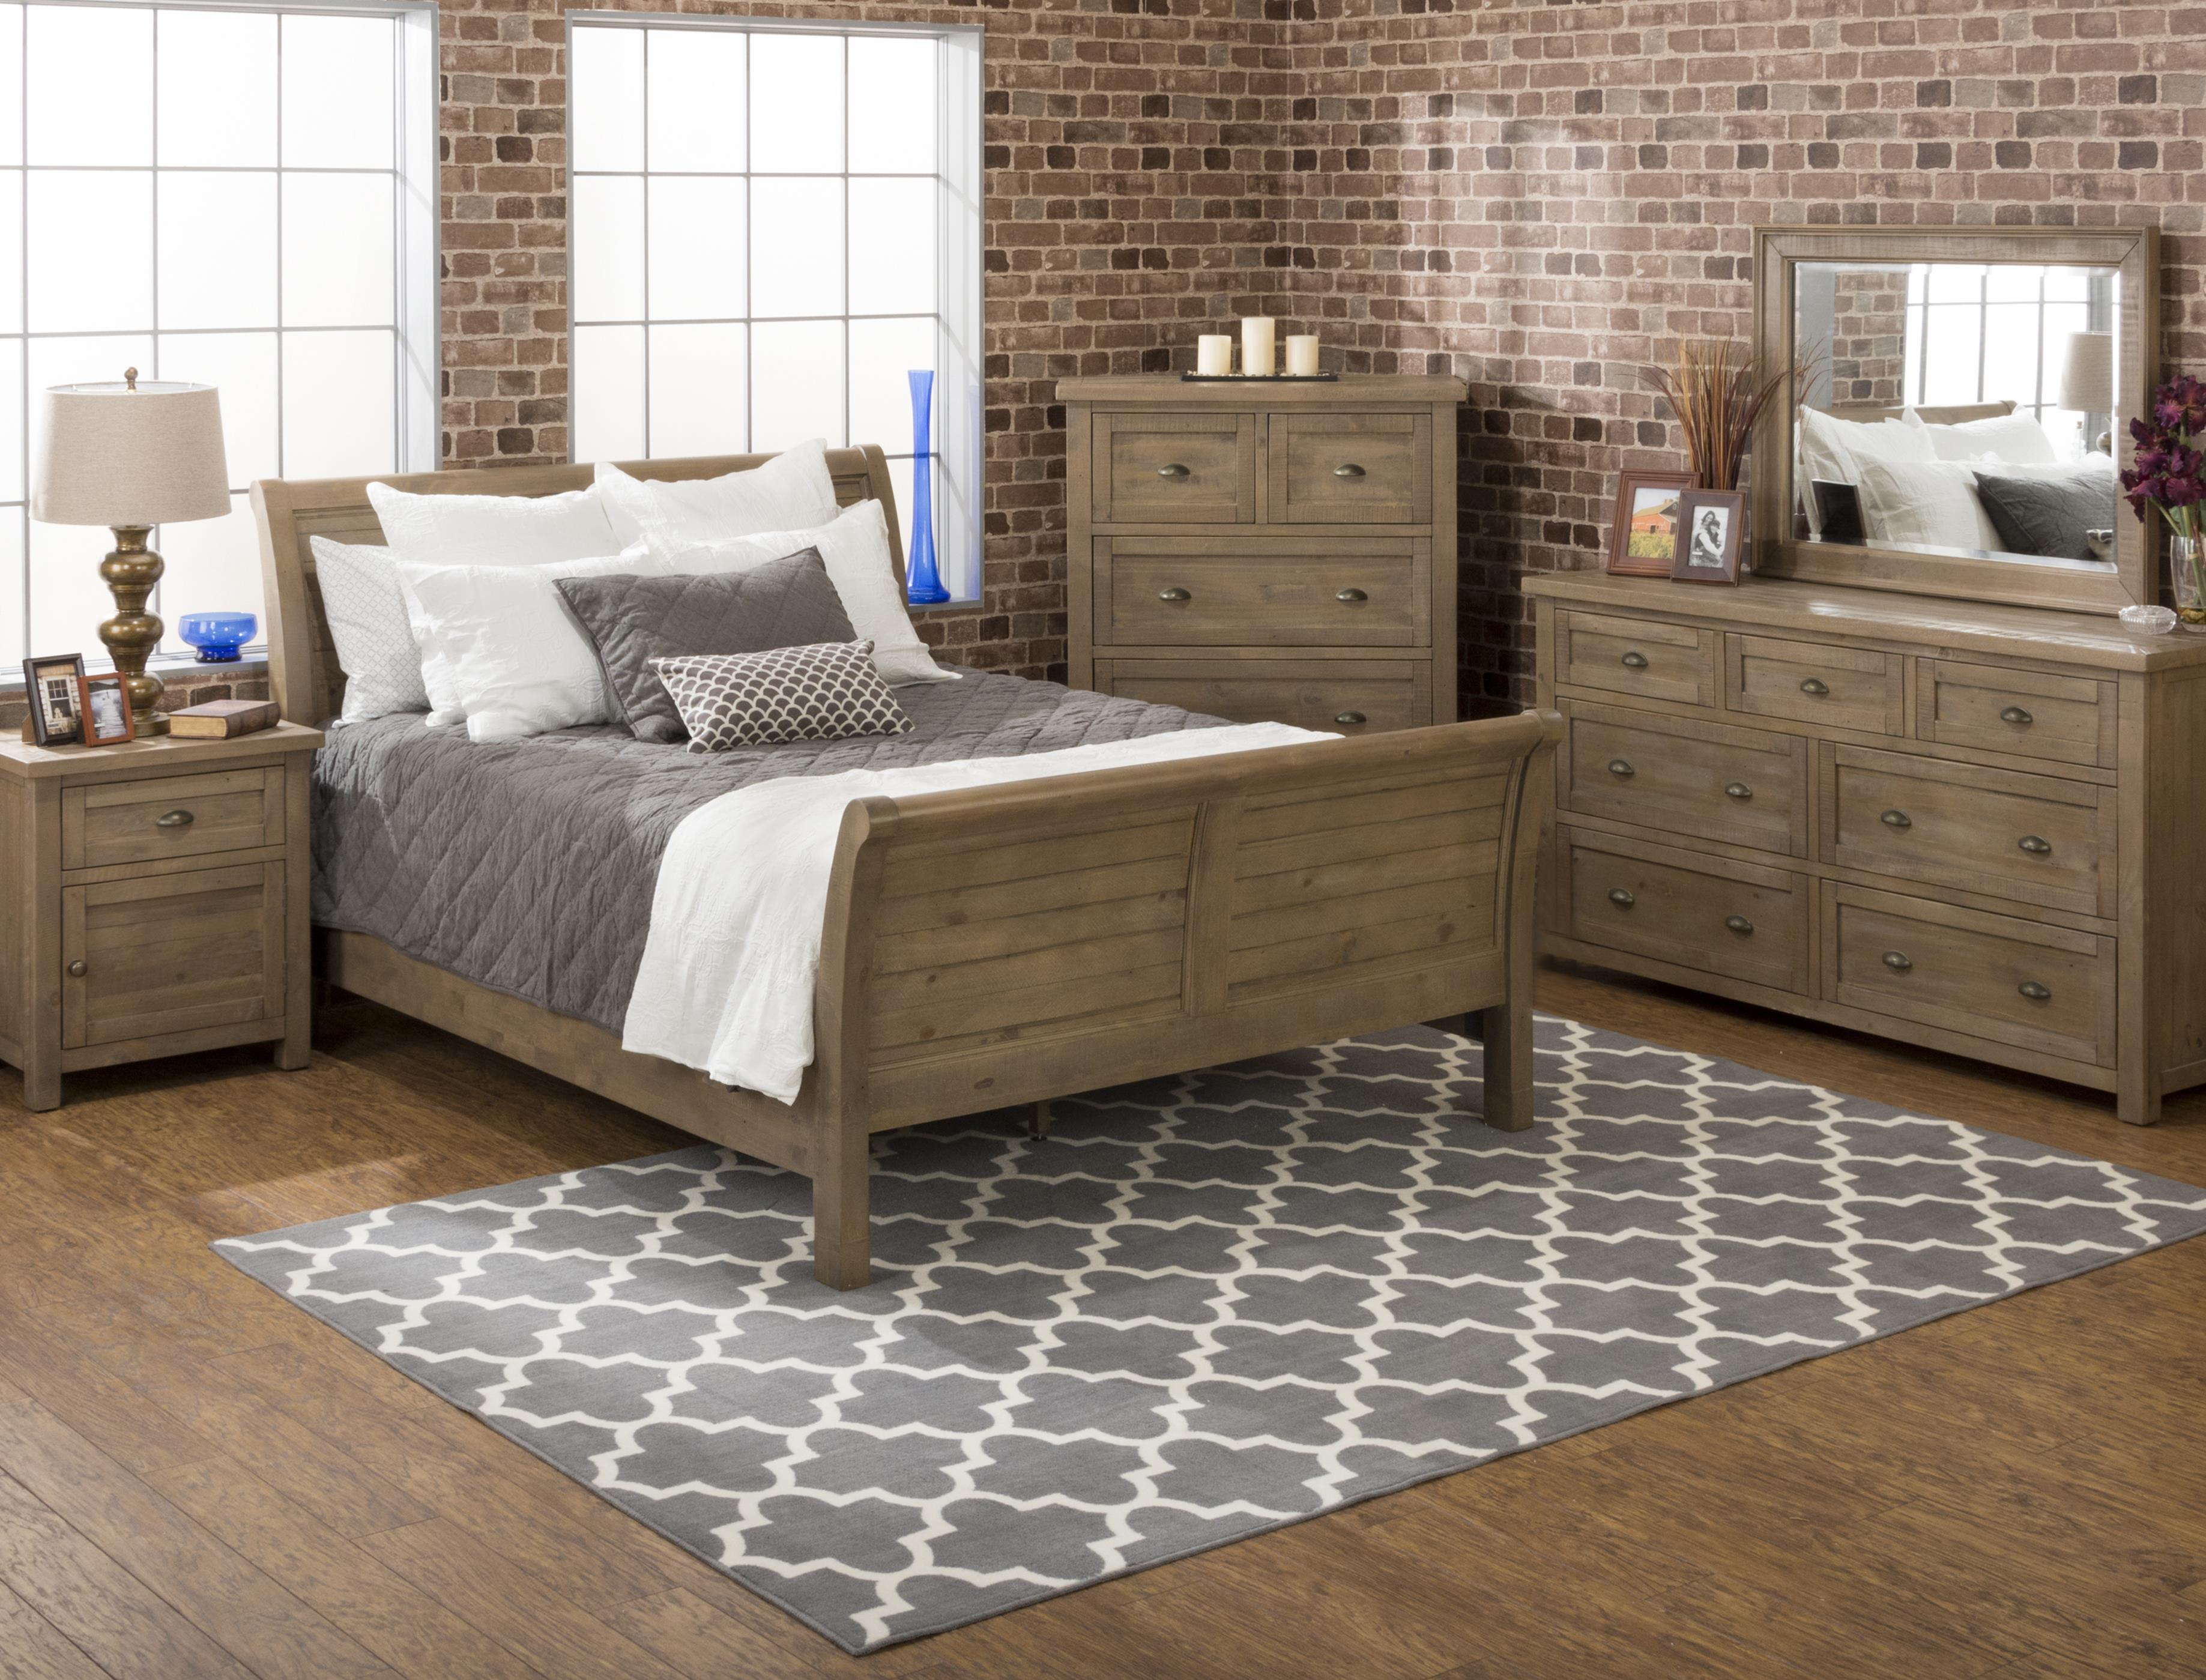 Jofran Slater Mill Pine Queen Bedroom Group - Item Number: 941 Q Bedroom Group 1